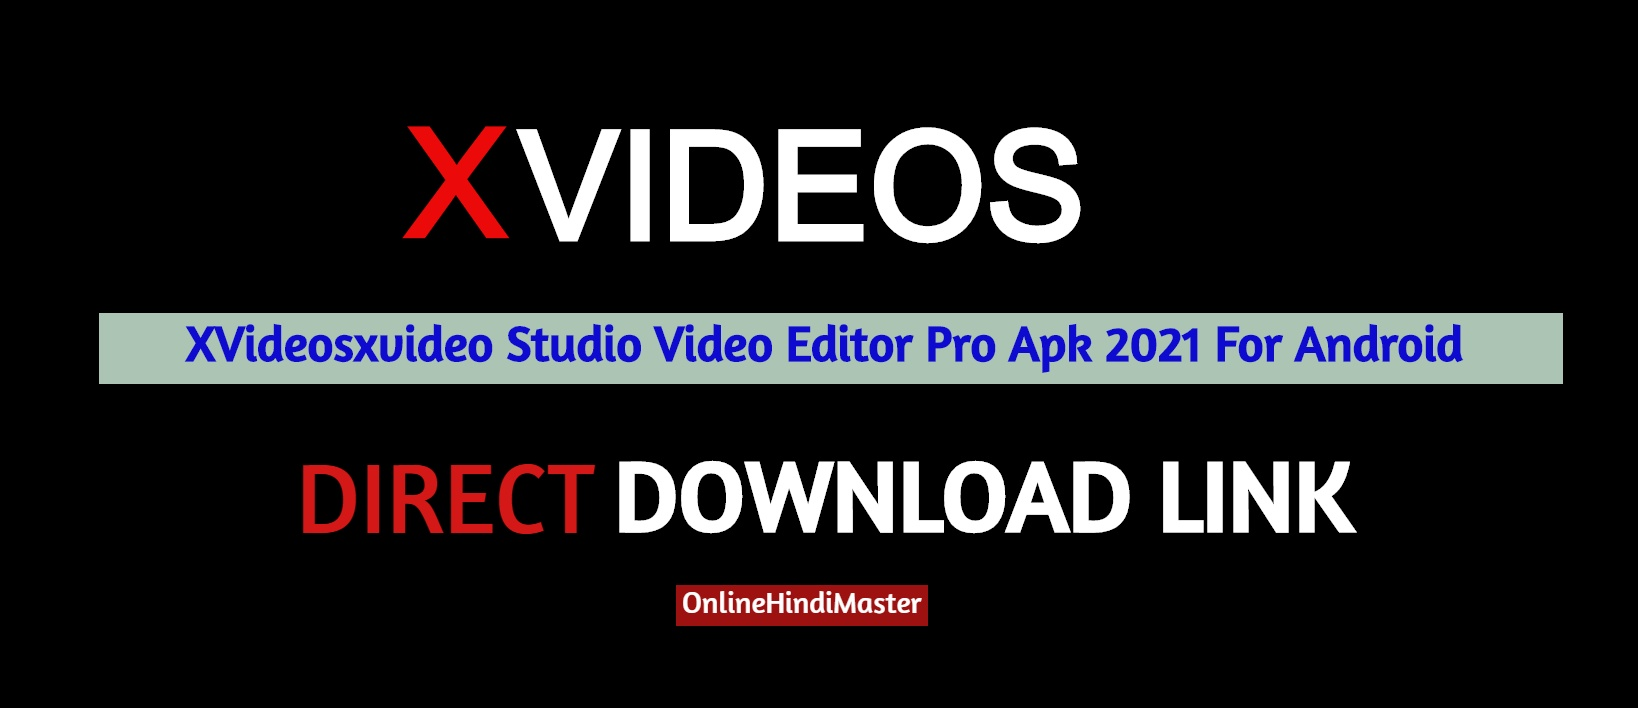 XVideosxvideo Studio Video Editor Pro Apk 2021 For Android